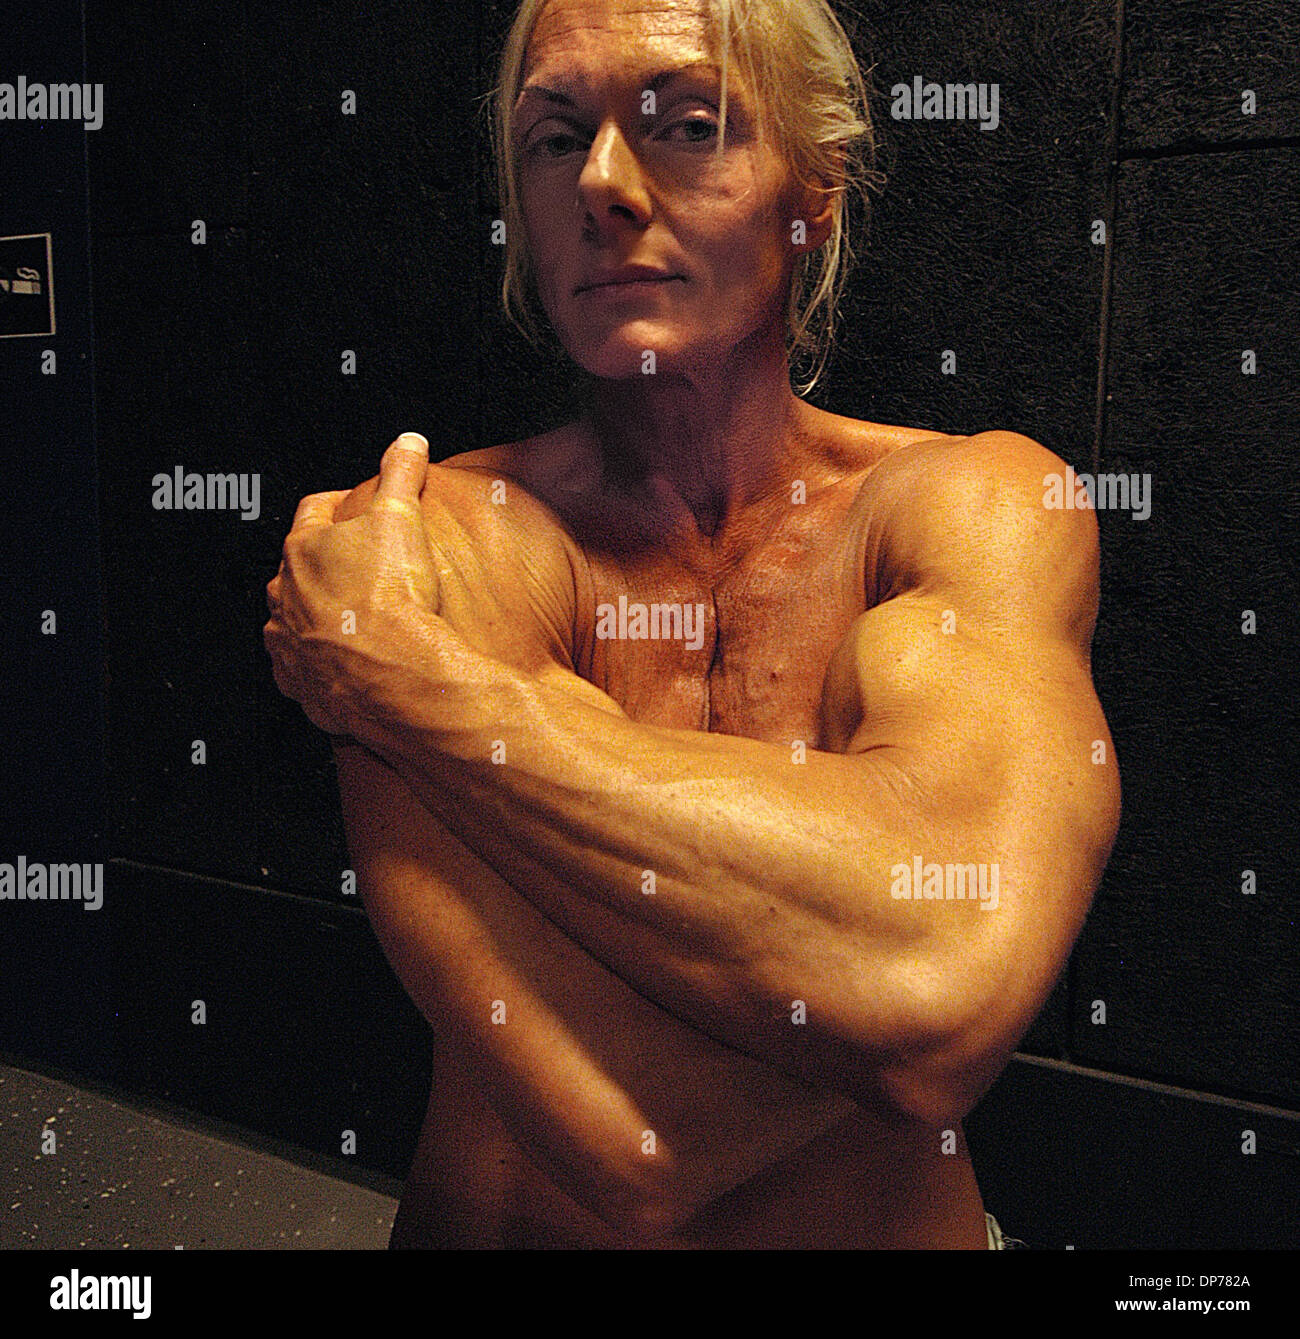 Before and after tan bodybuilding pictures - fenix de fuego 3d images